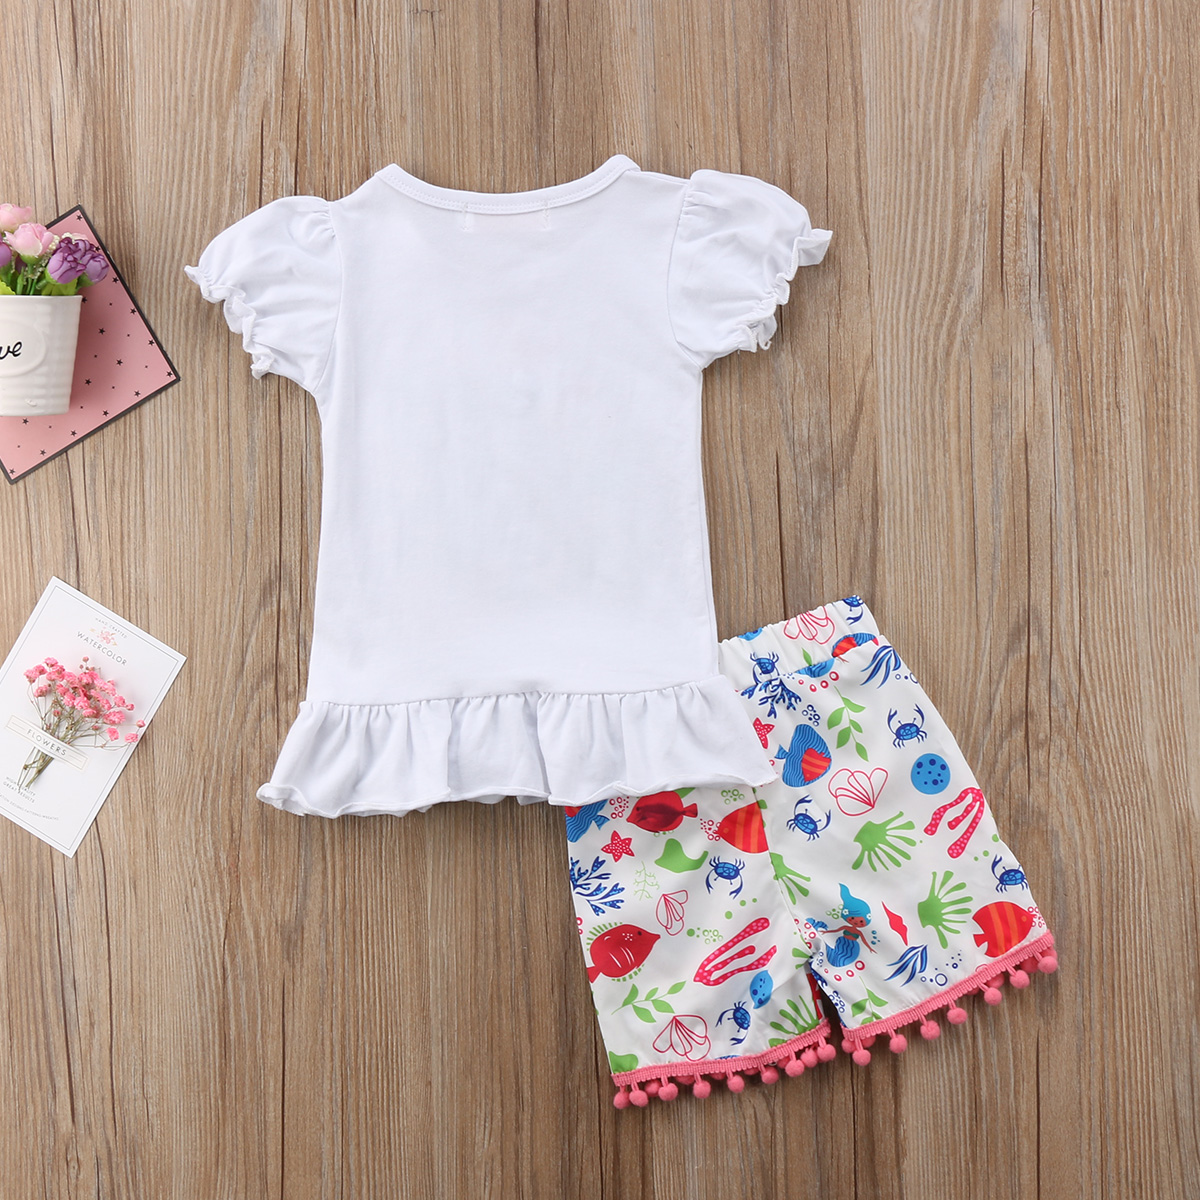 361f2c3af Hawaii Mermaid Toddler Kids Baby Girls Tassels Top T shirt Shorts Pants  Clothes Outfits-in Clothing Sets from Mother & Kids on Aliexpress.com |  Alibaba ...